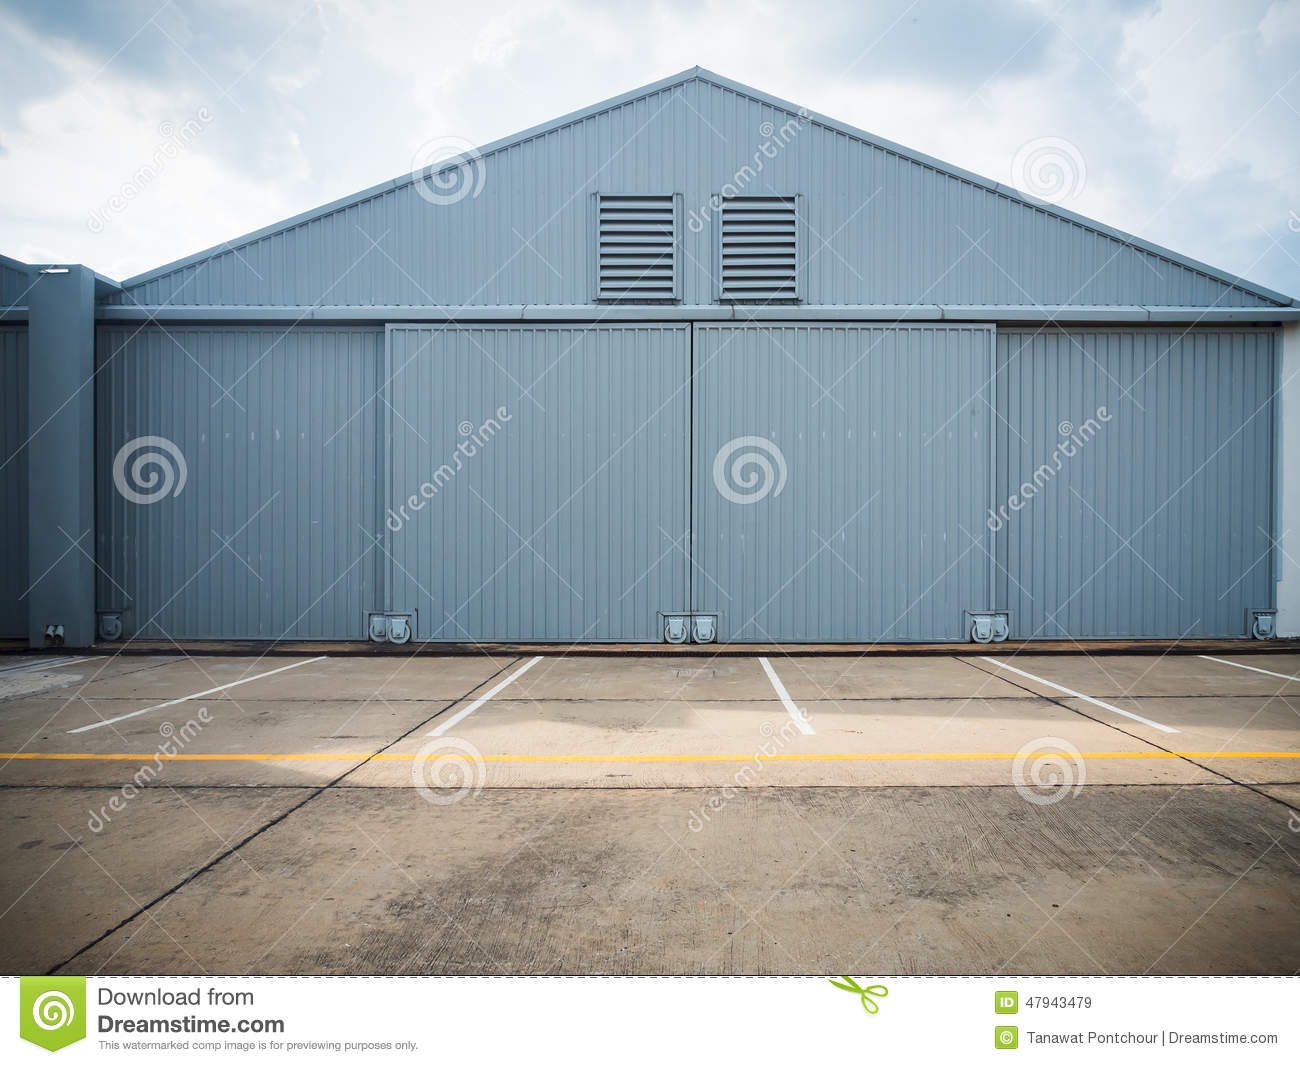 & Closed warehouse doors. stock image. Image of aging metal - 47943479